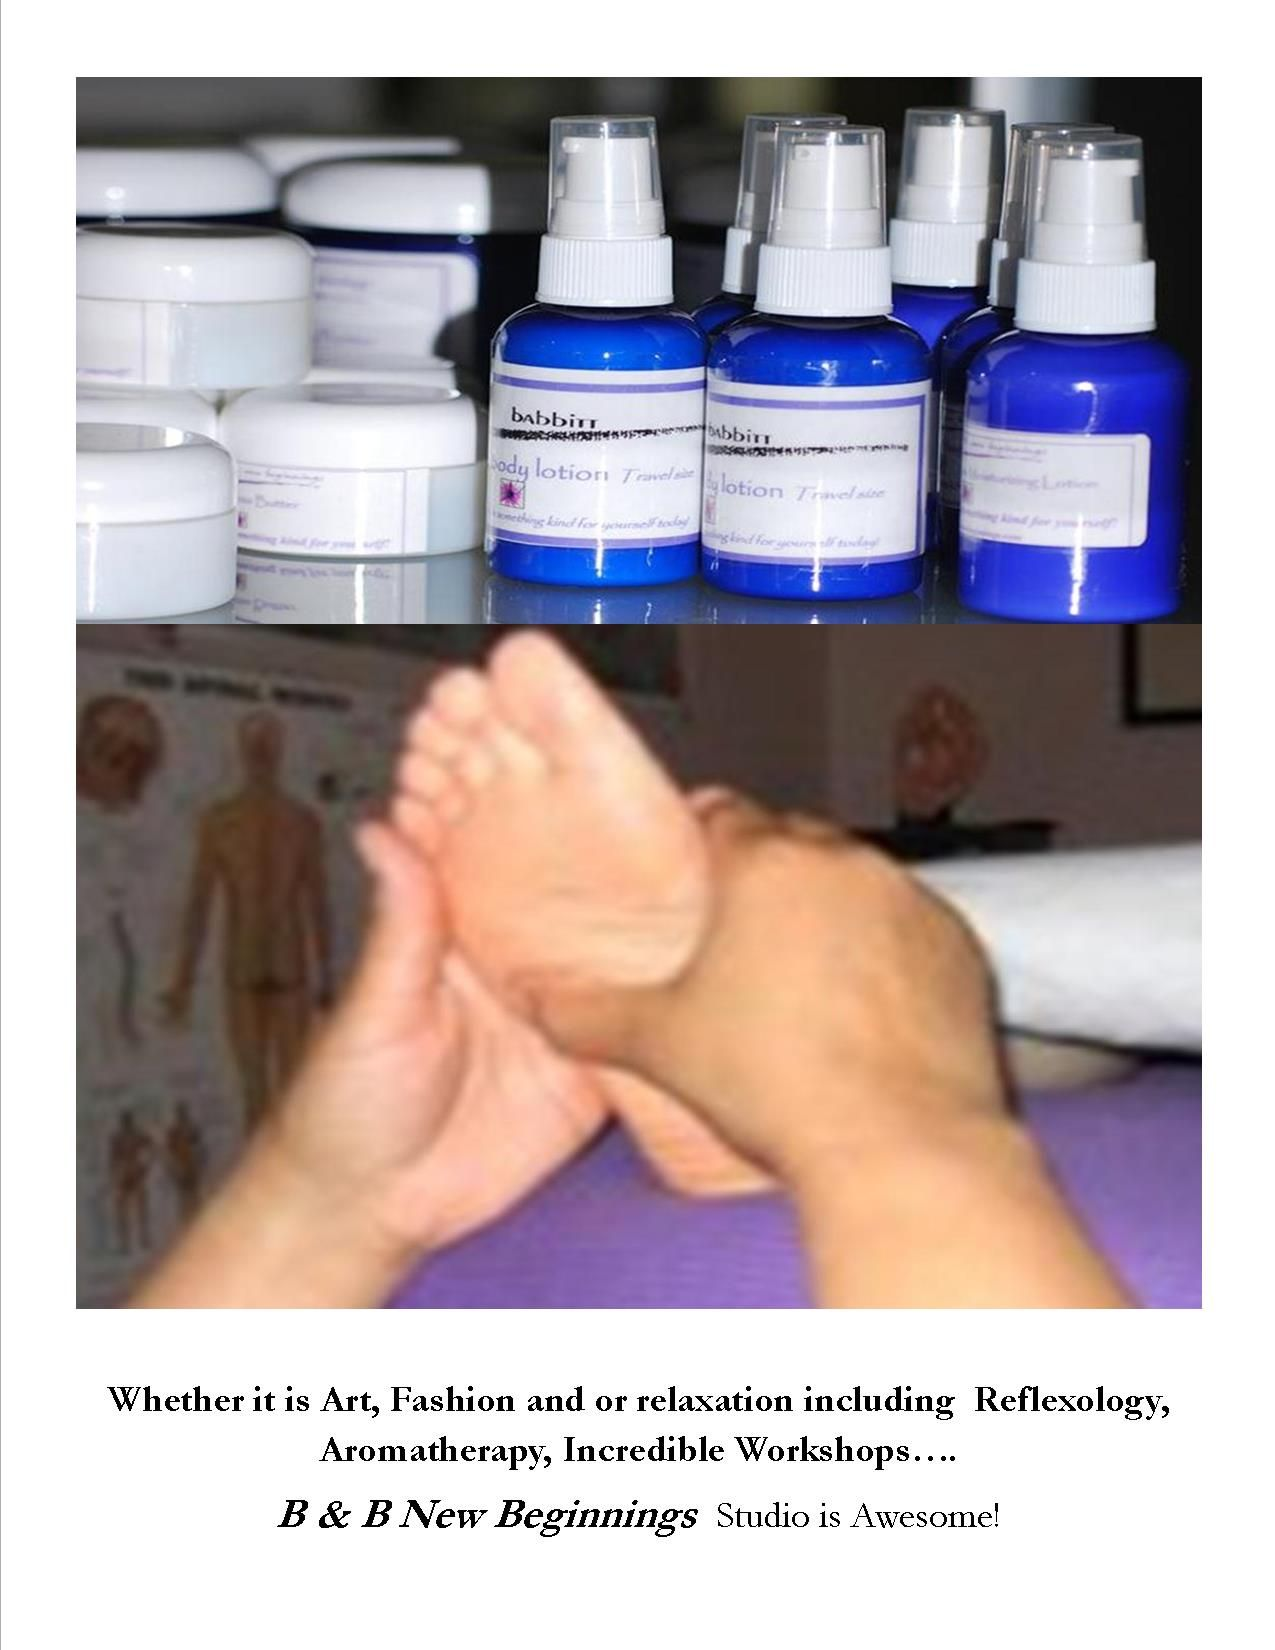 Relax Release Rejuvenate You Are In Awesome Hands With Babbitt